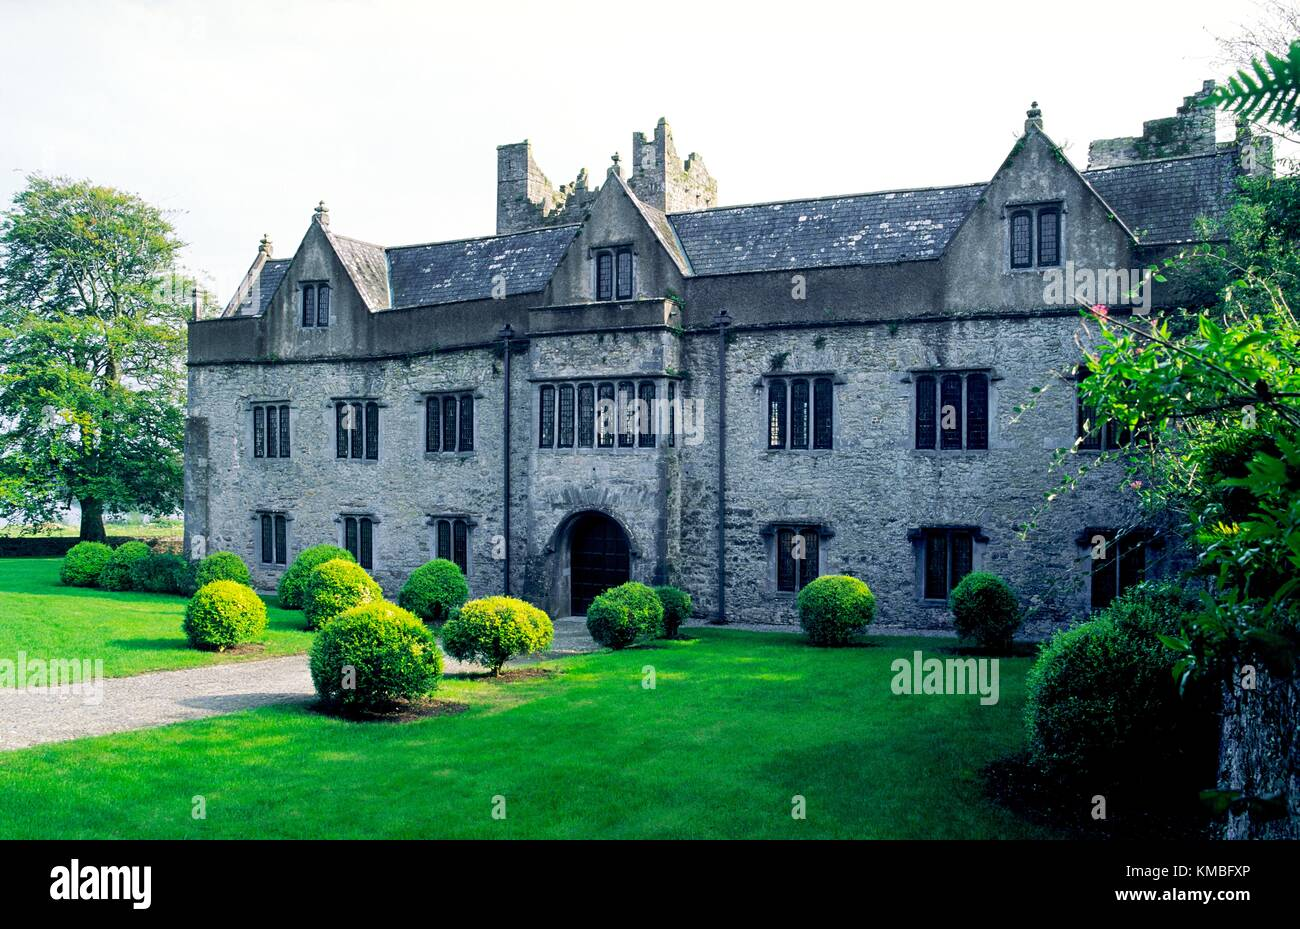 Tudor period front of Ormond Castle in the town of Carrick on Suir, County Tipperary, Ireland. - Stock Image